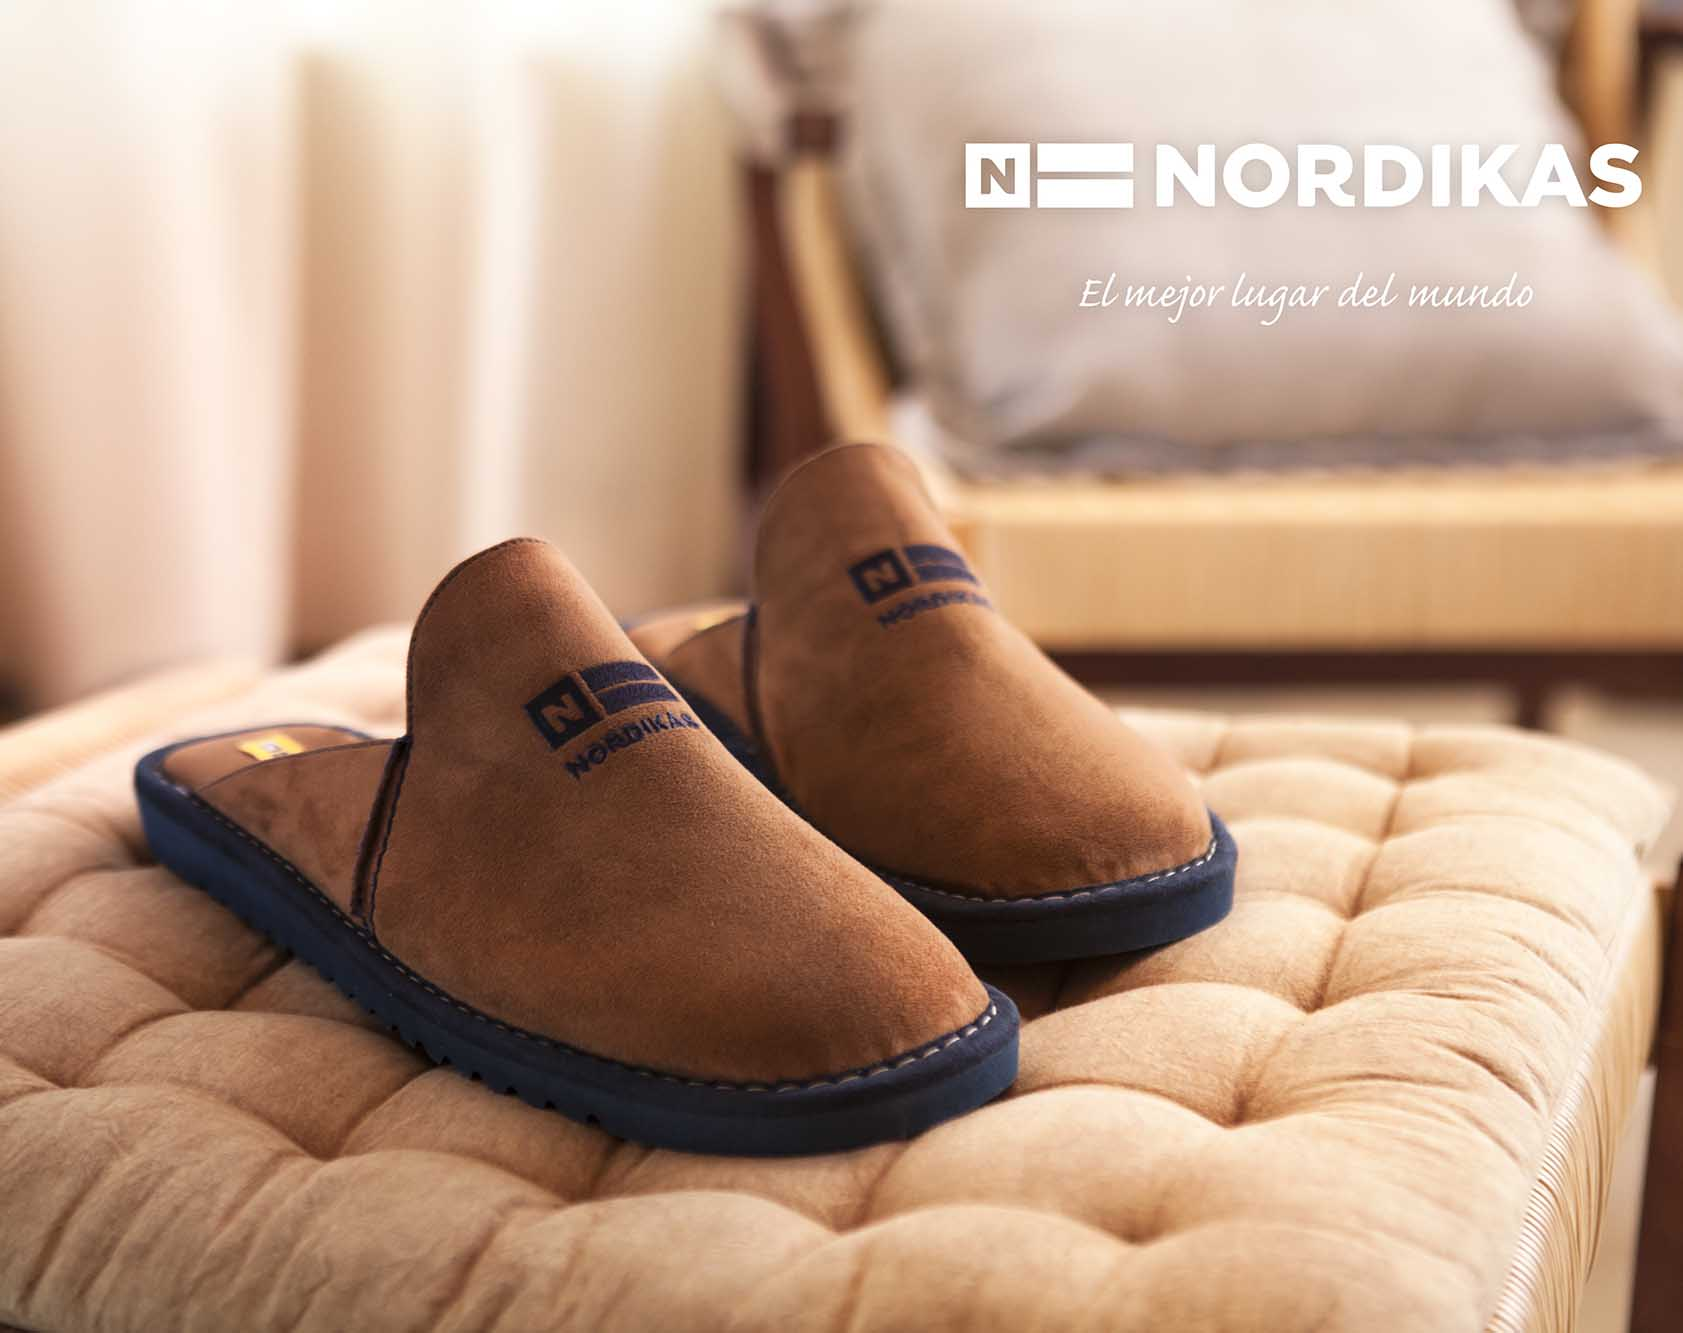 Nordikas Slippers